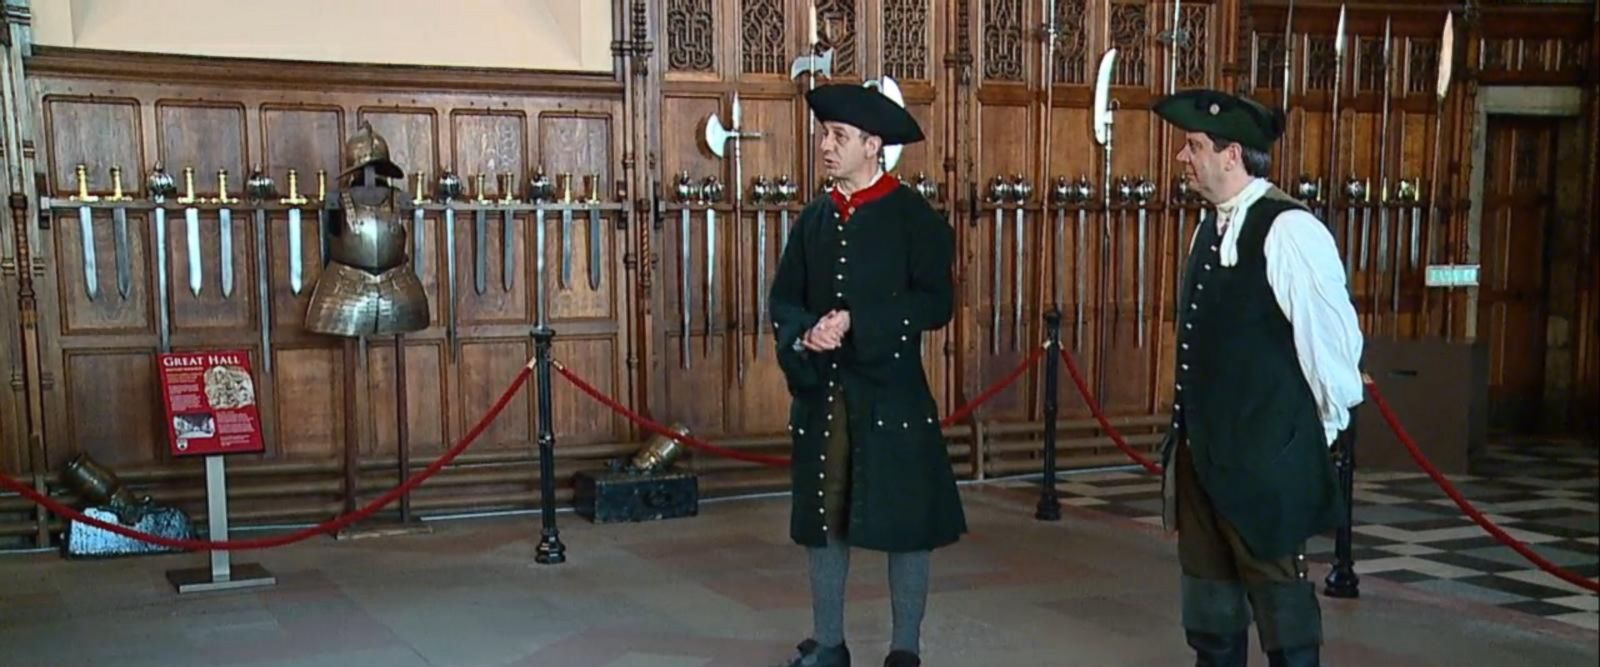 VIDEO: Intro to Scottish Poet Robert Burns in Grand hall at Edinburgh Castle